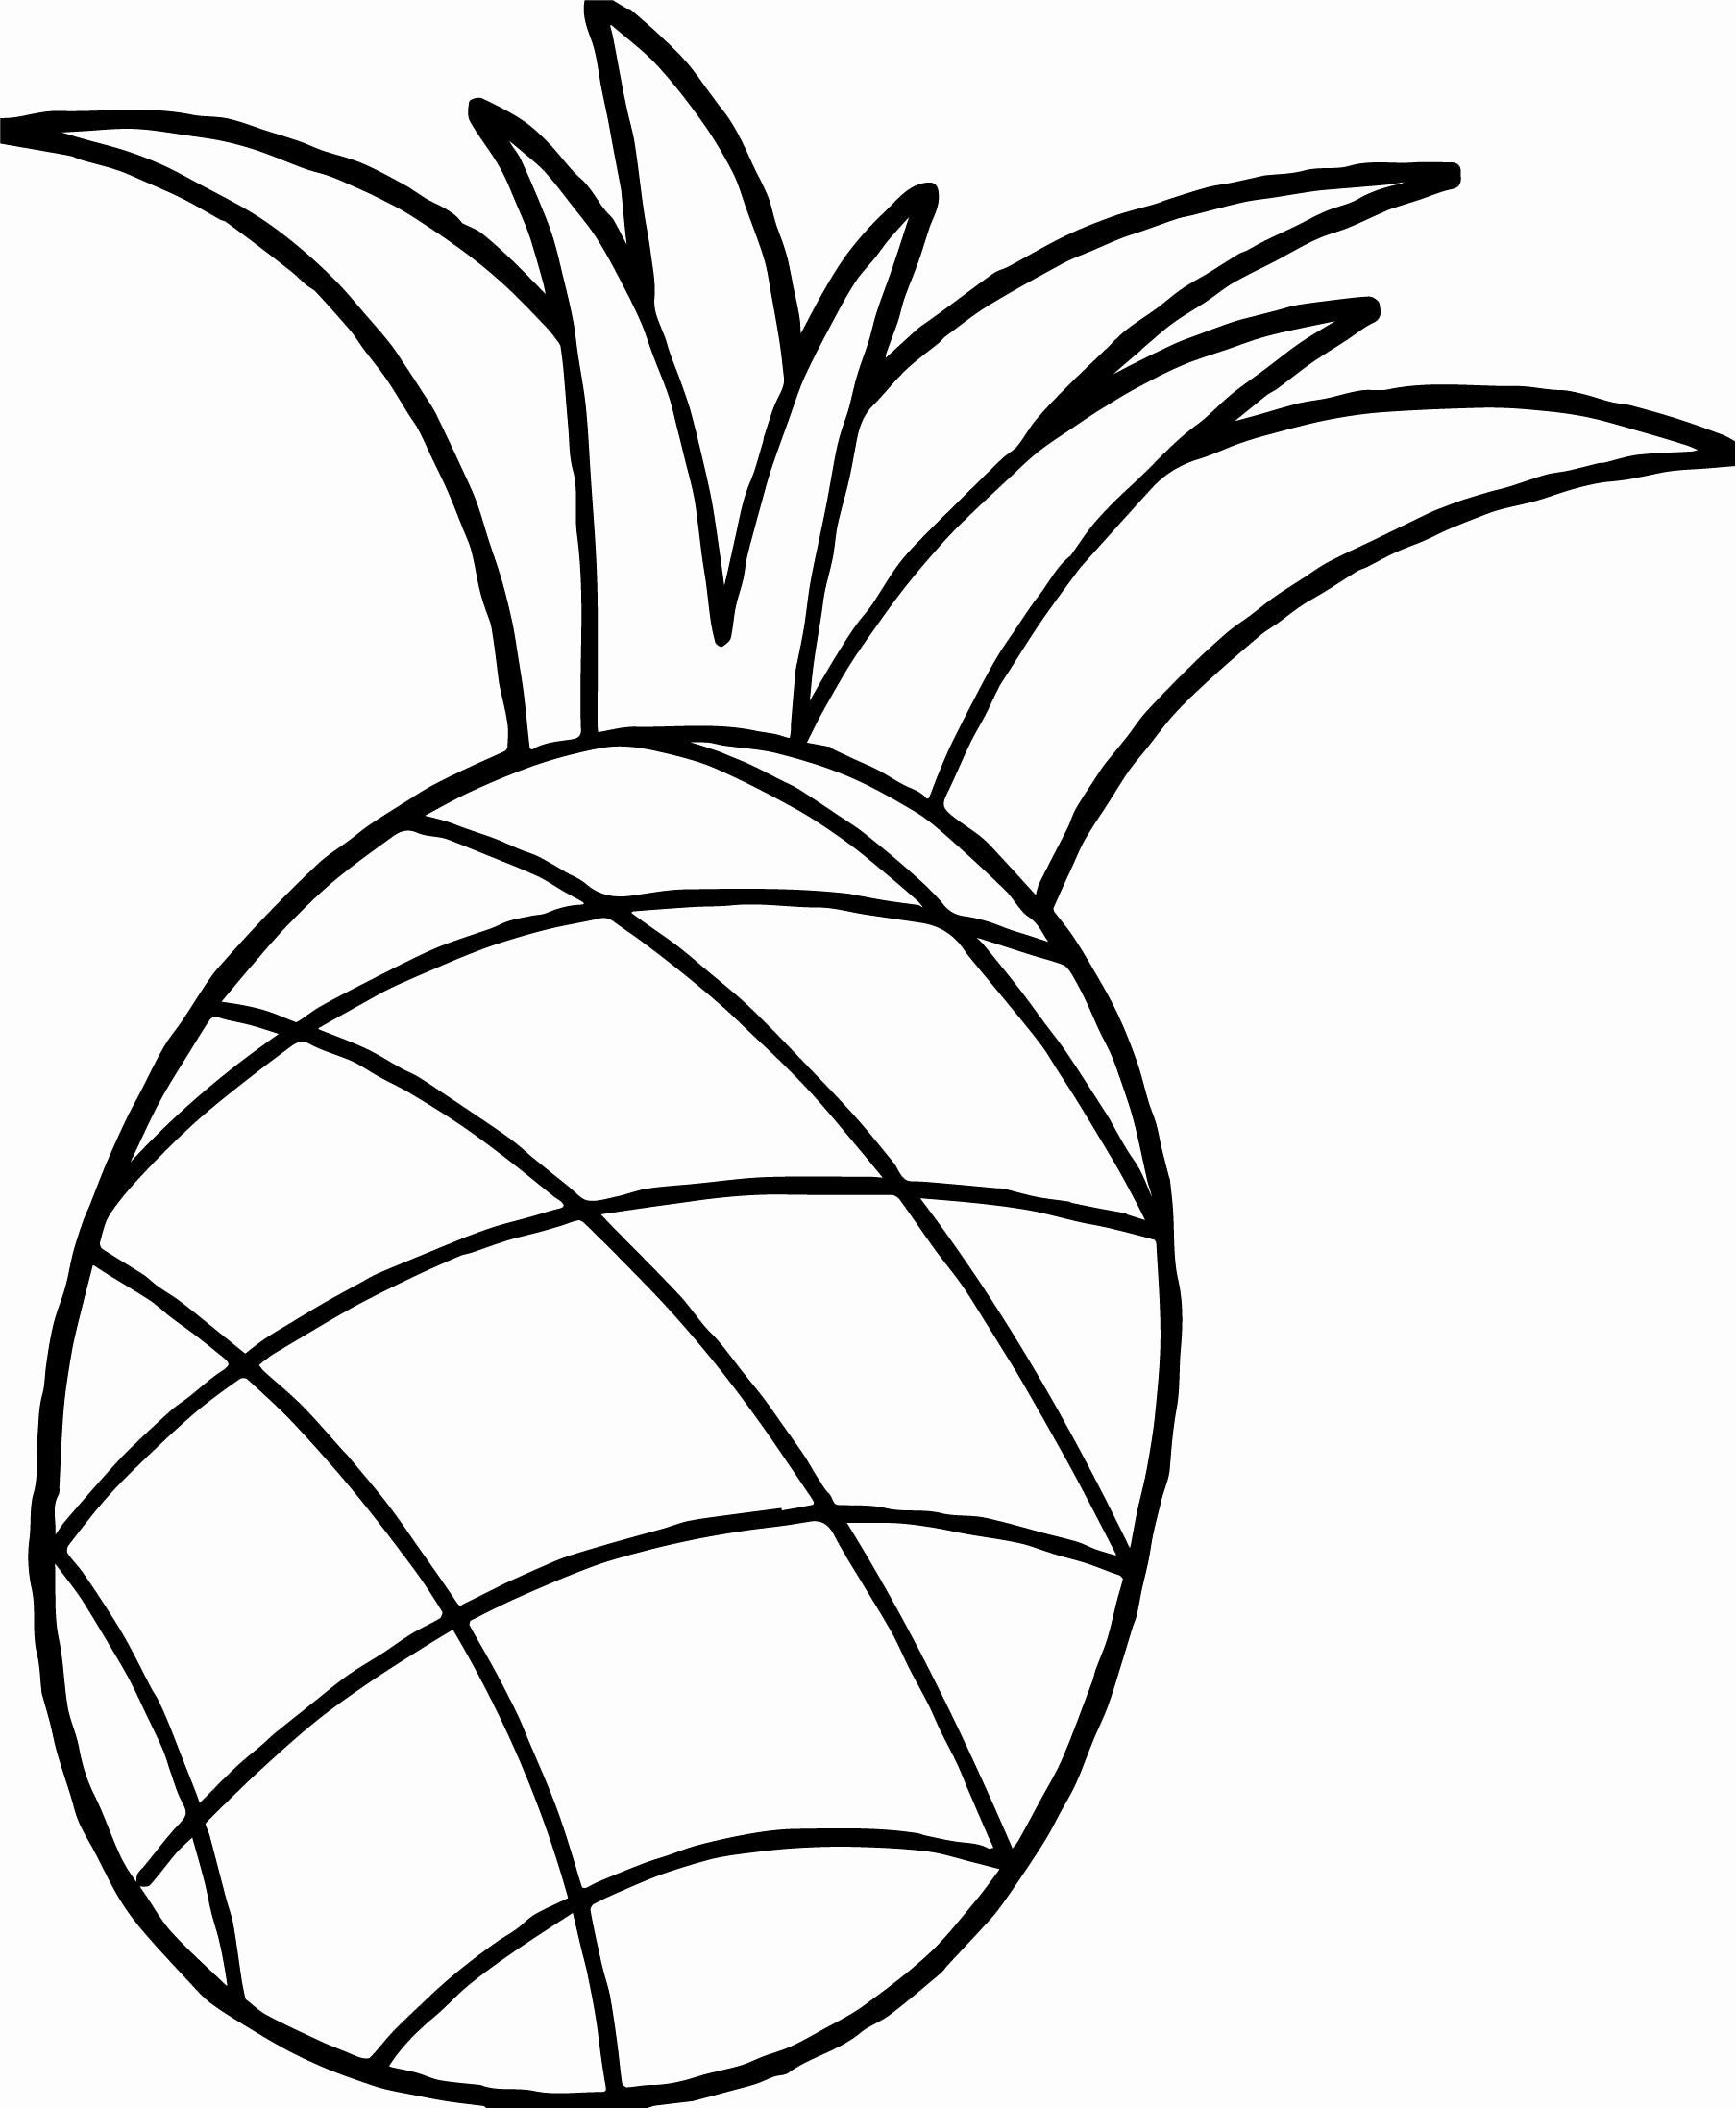 24 Cute Pineapple Coloring Page In 2020 Cute Pineapple